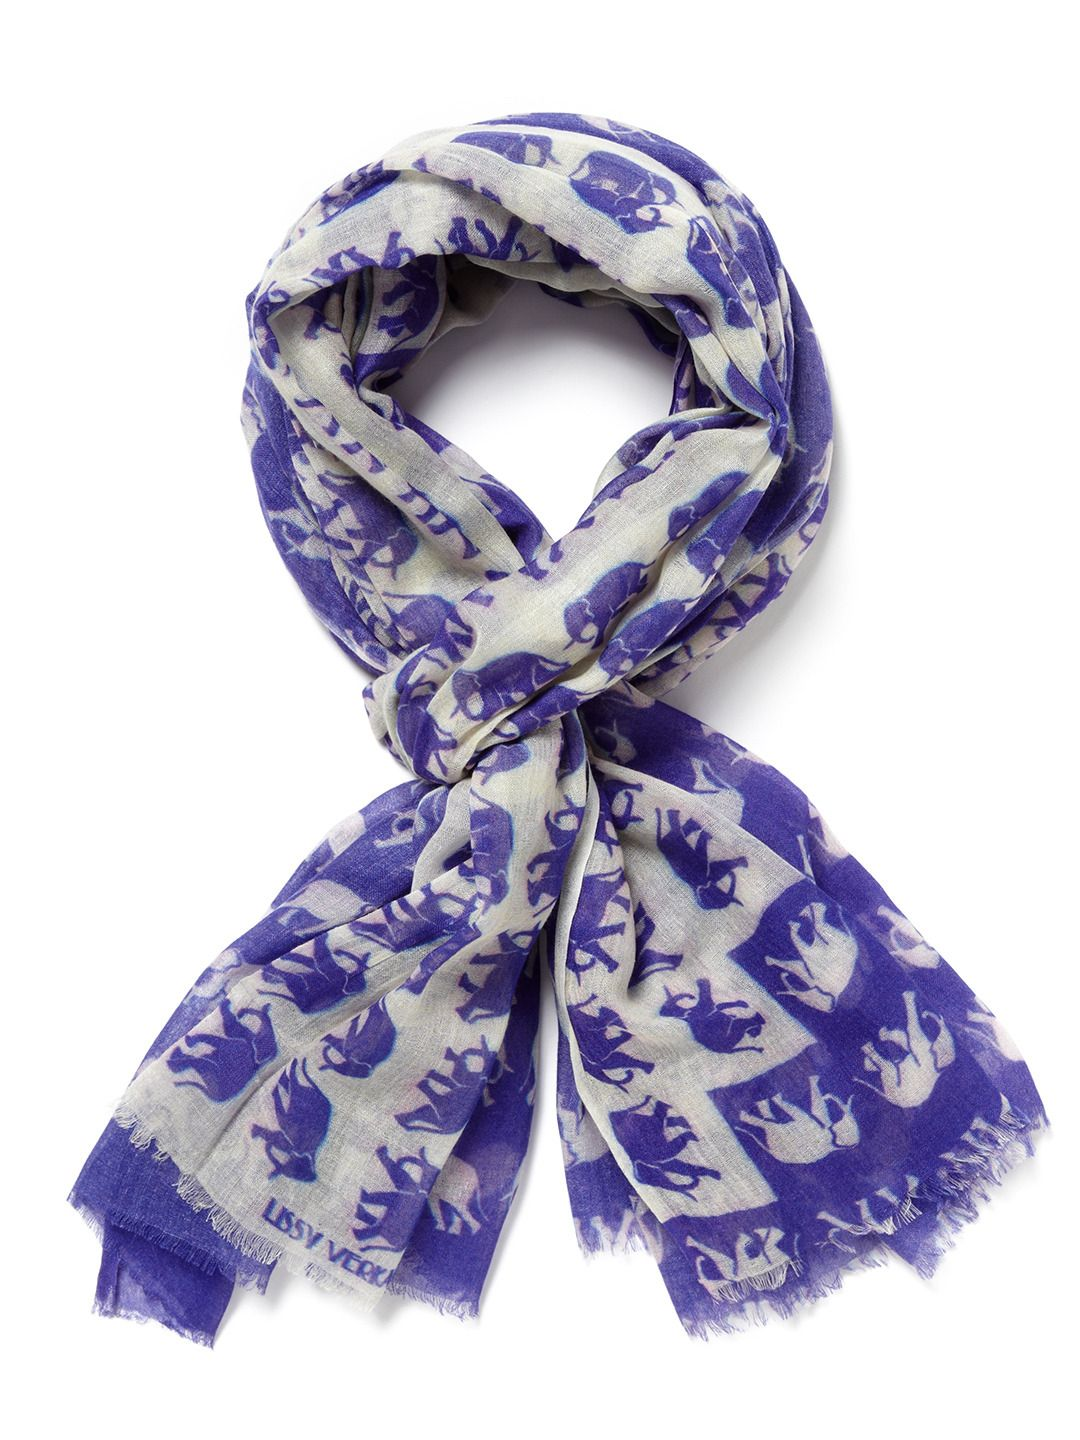 Elephants Parade Scarf by Be and D